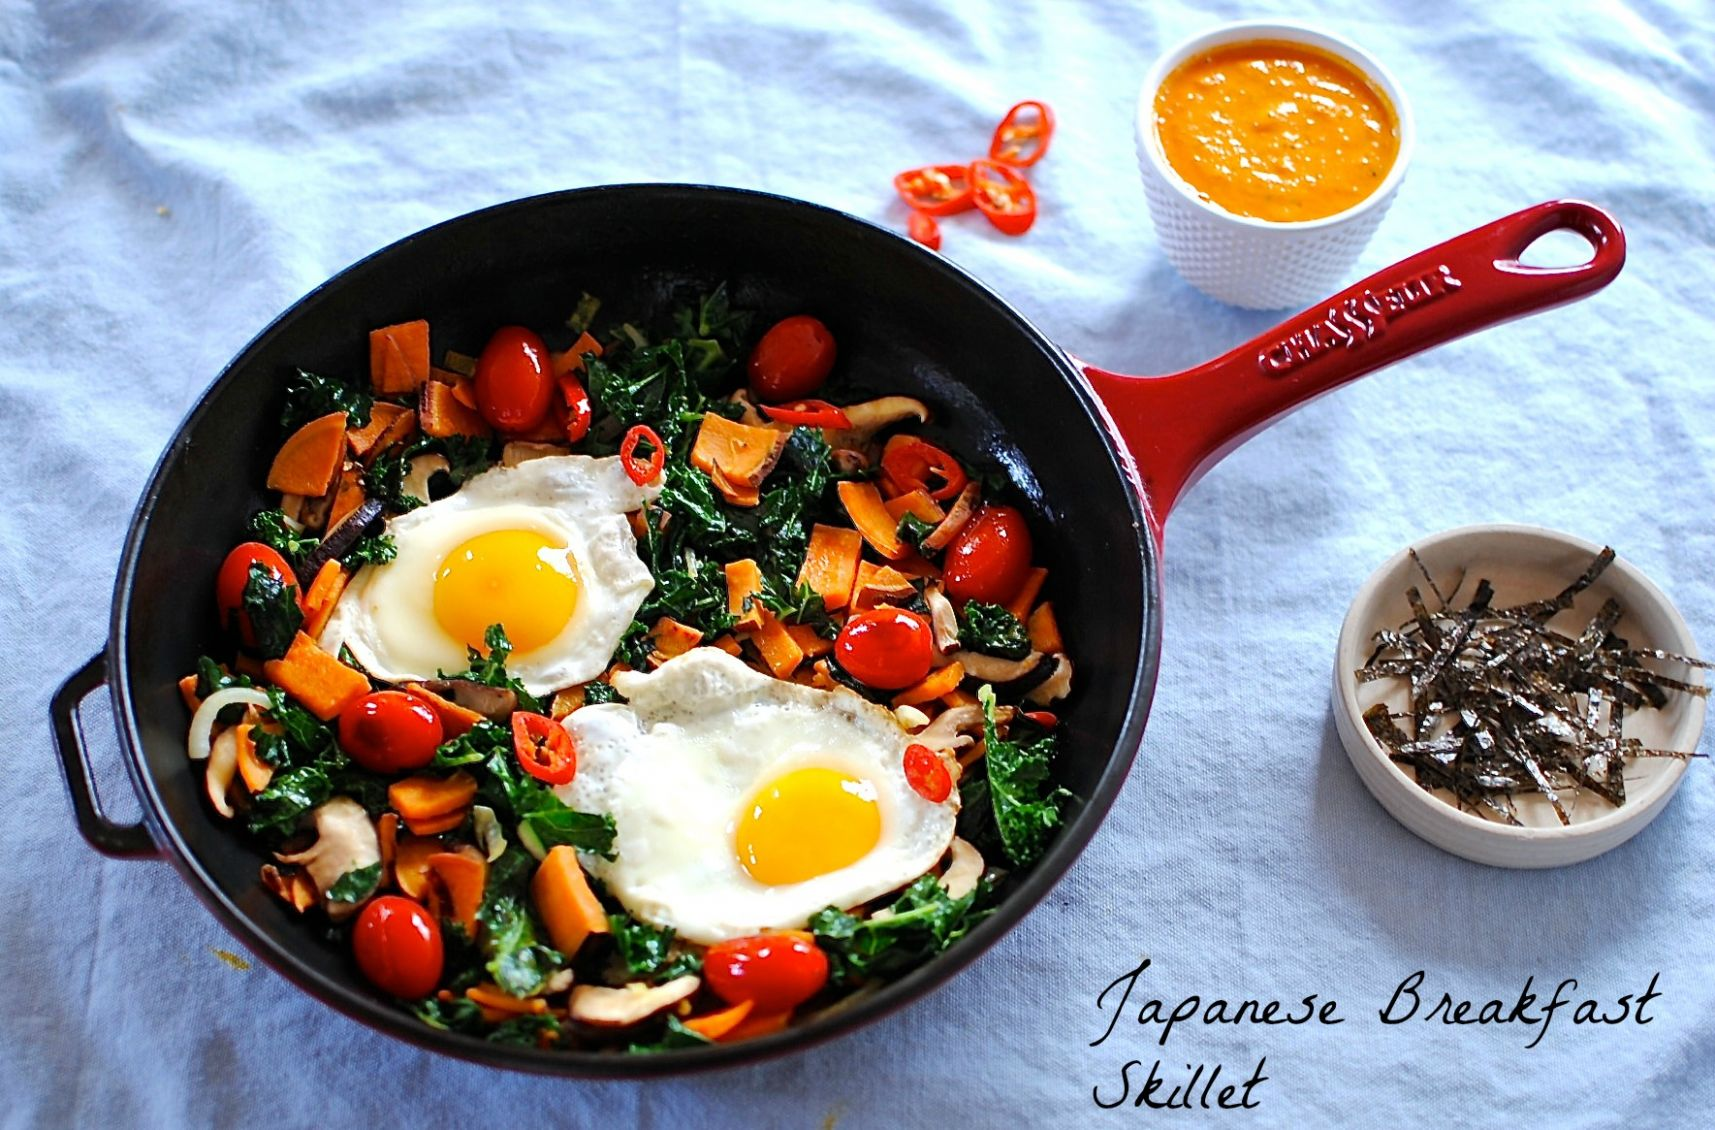 Japanese Breakfast Skillet with Warm Tomato, Ginger and Miso Dressing